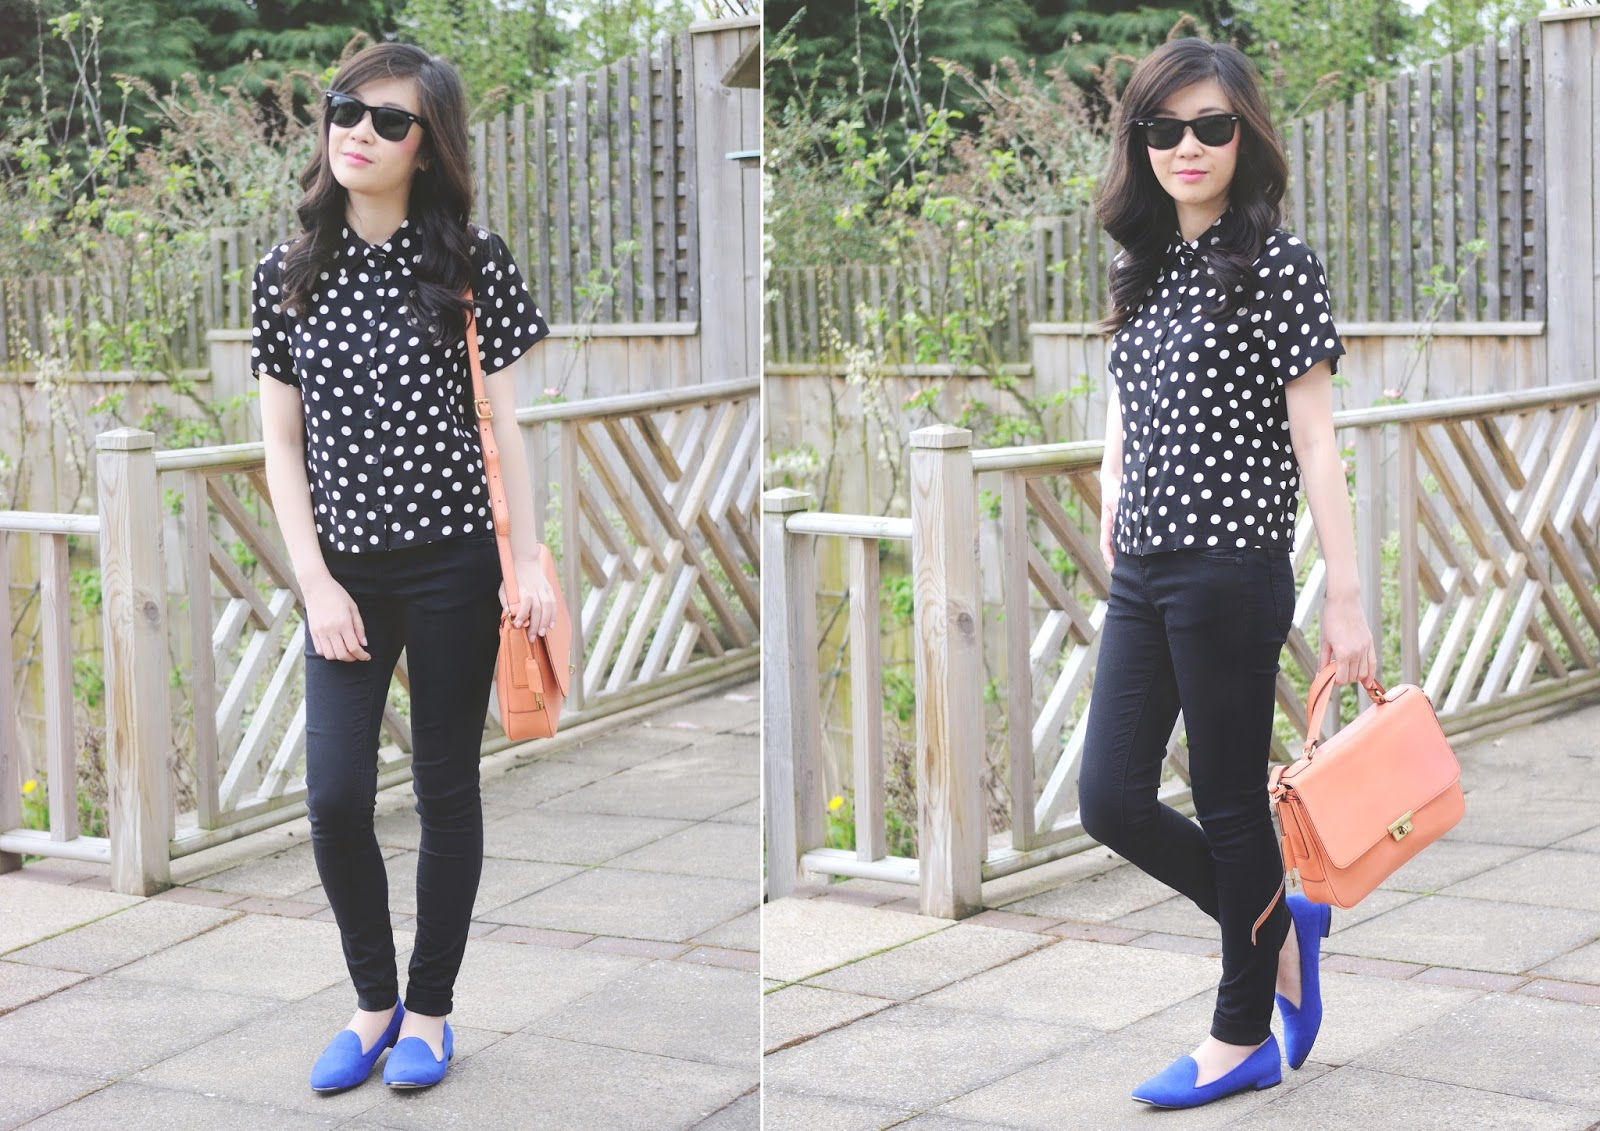 accessorizing with colourful accessories, how to wear blue shoes, what to wear with blue shoes